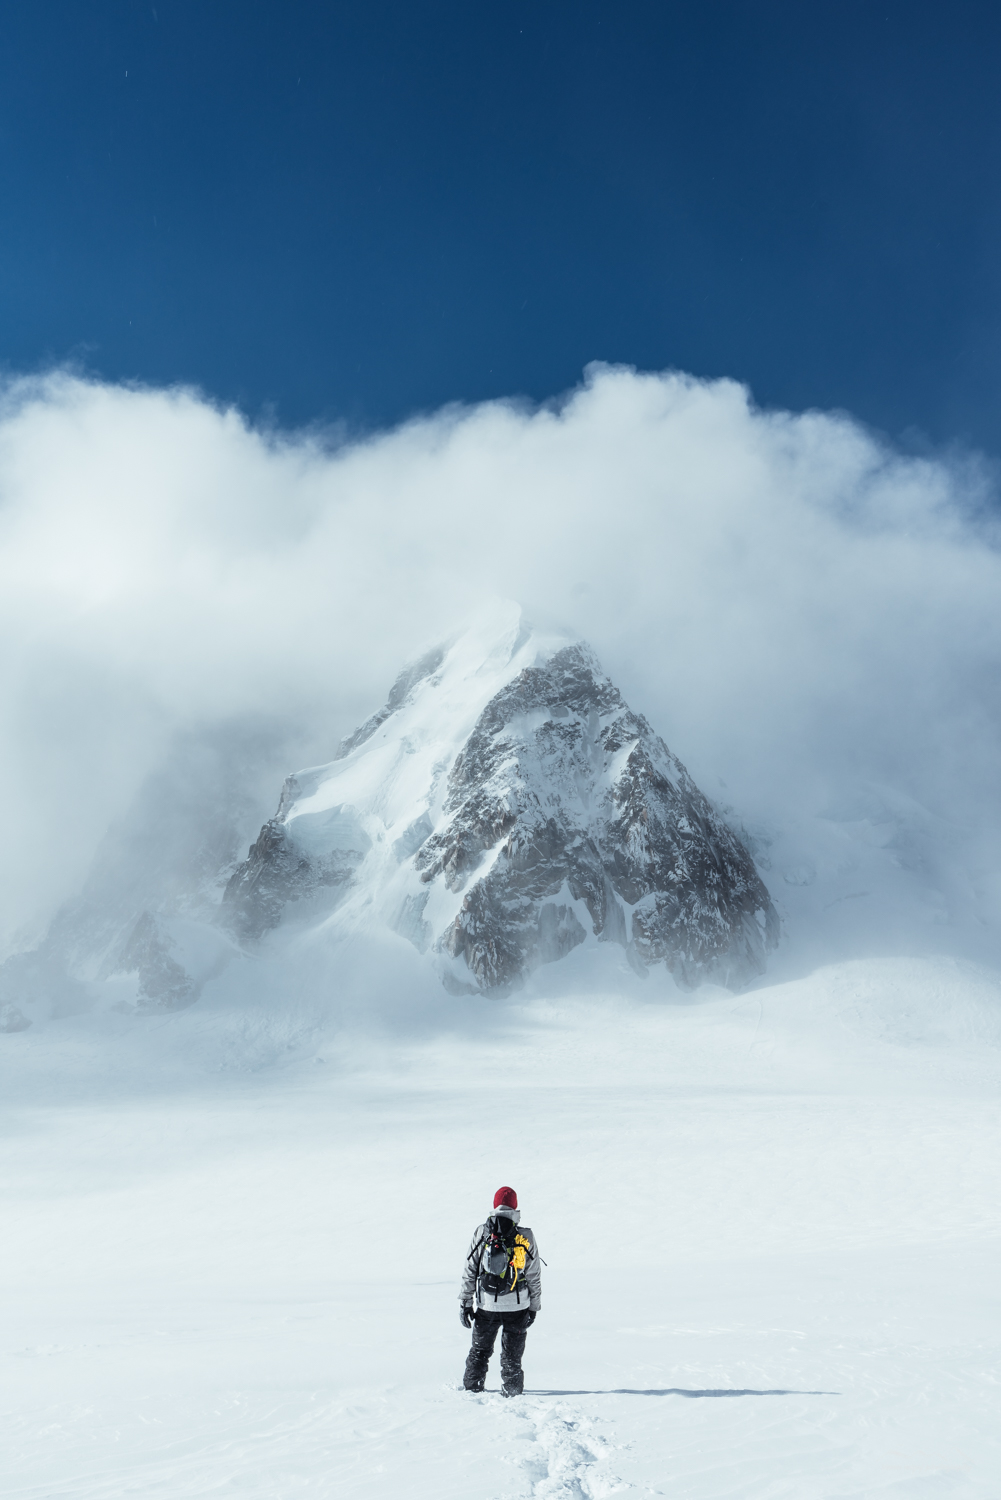 Man in the snowy mountain landscape of the French Alps